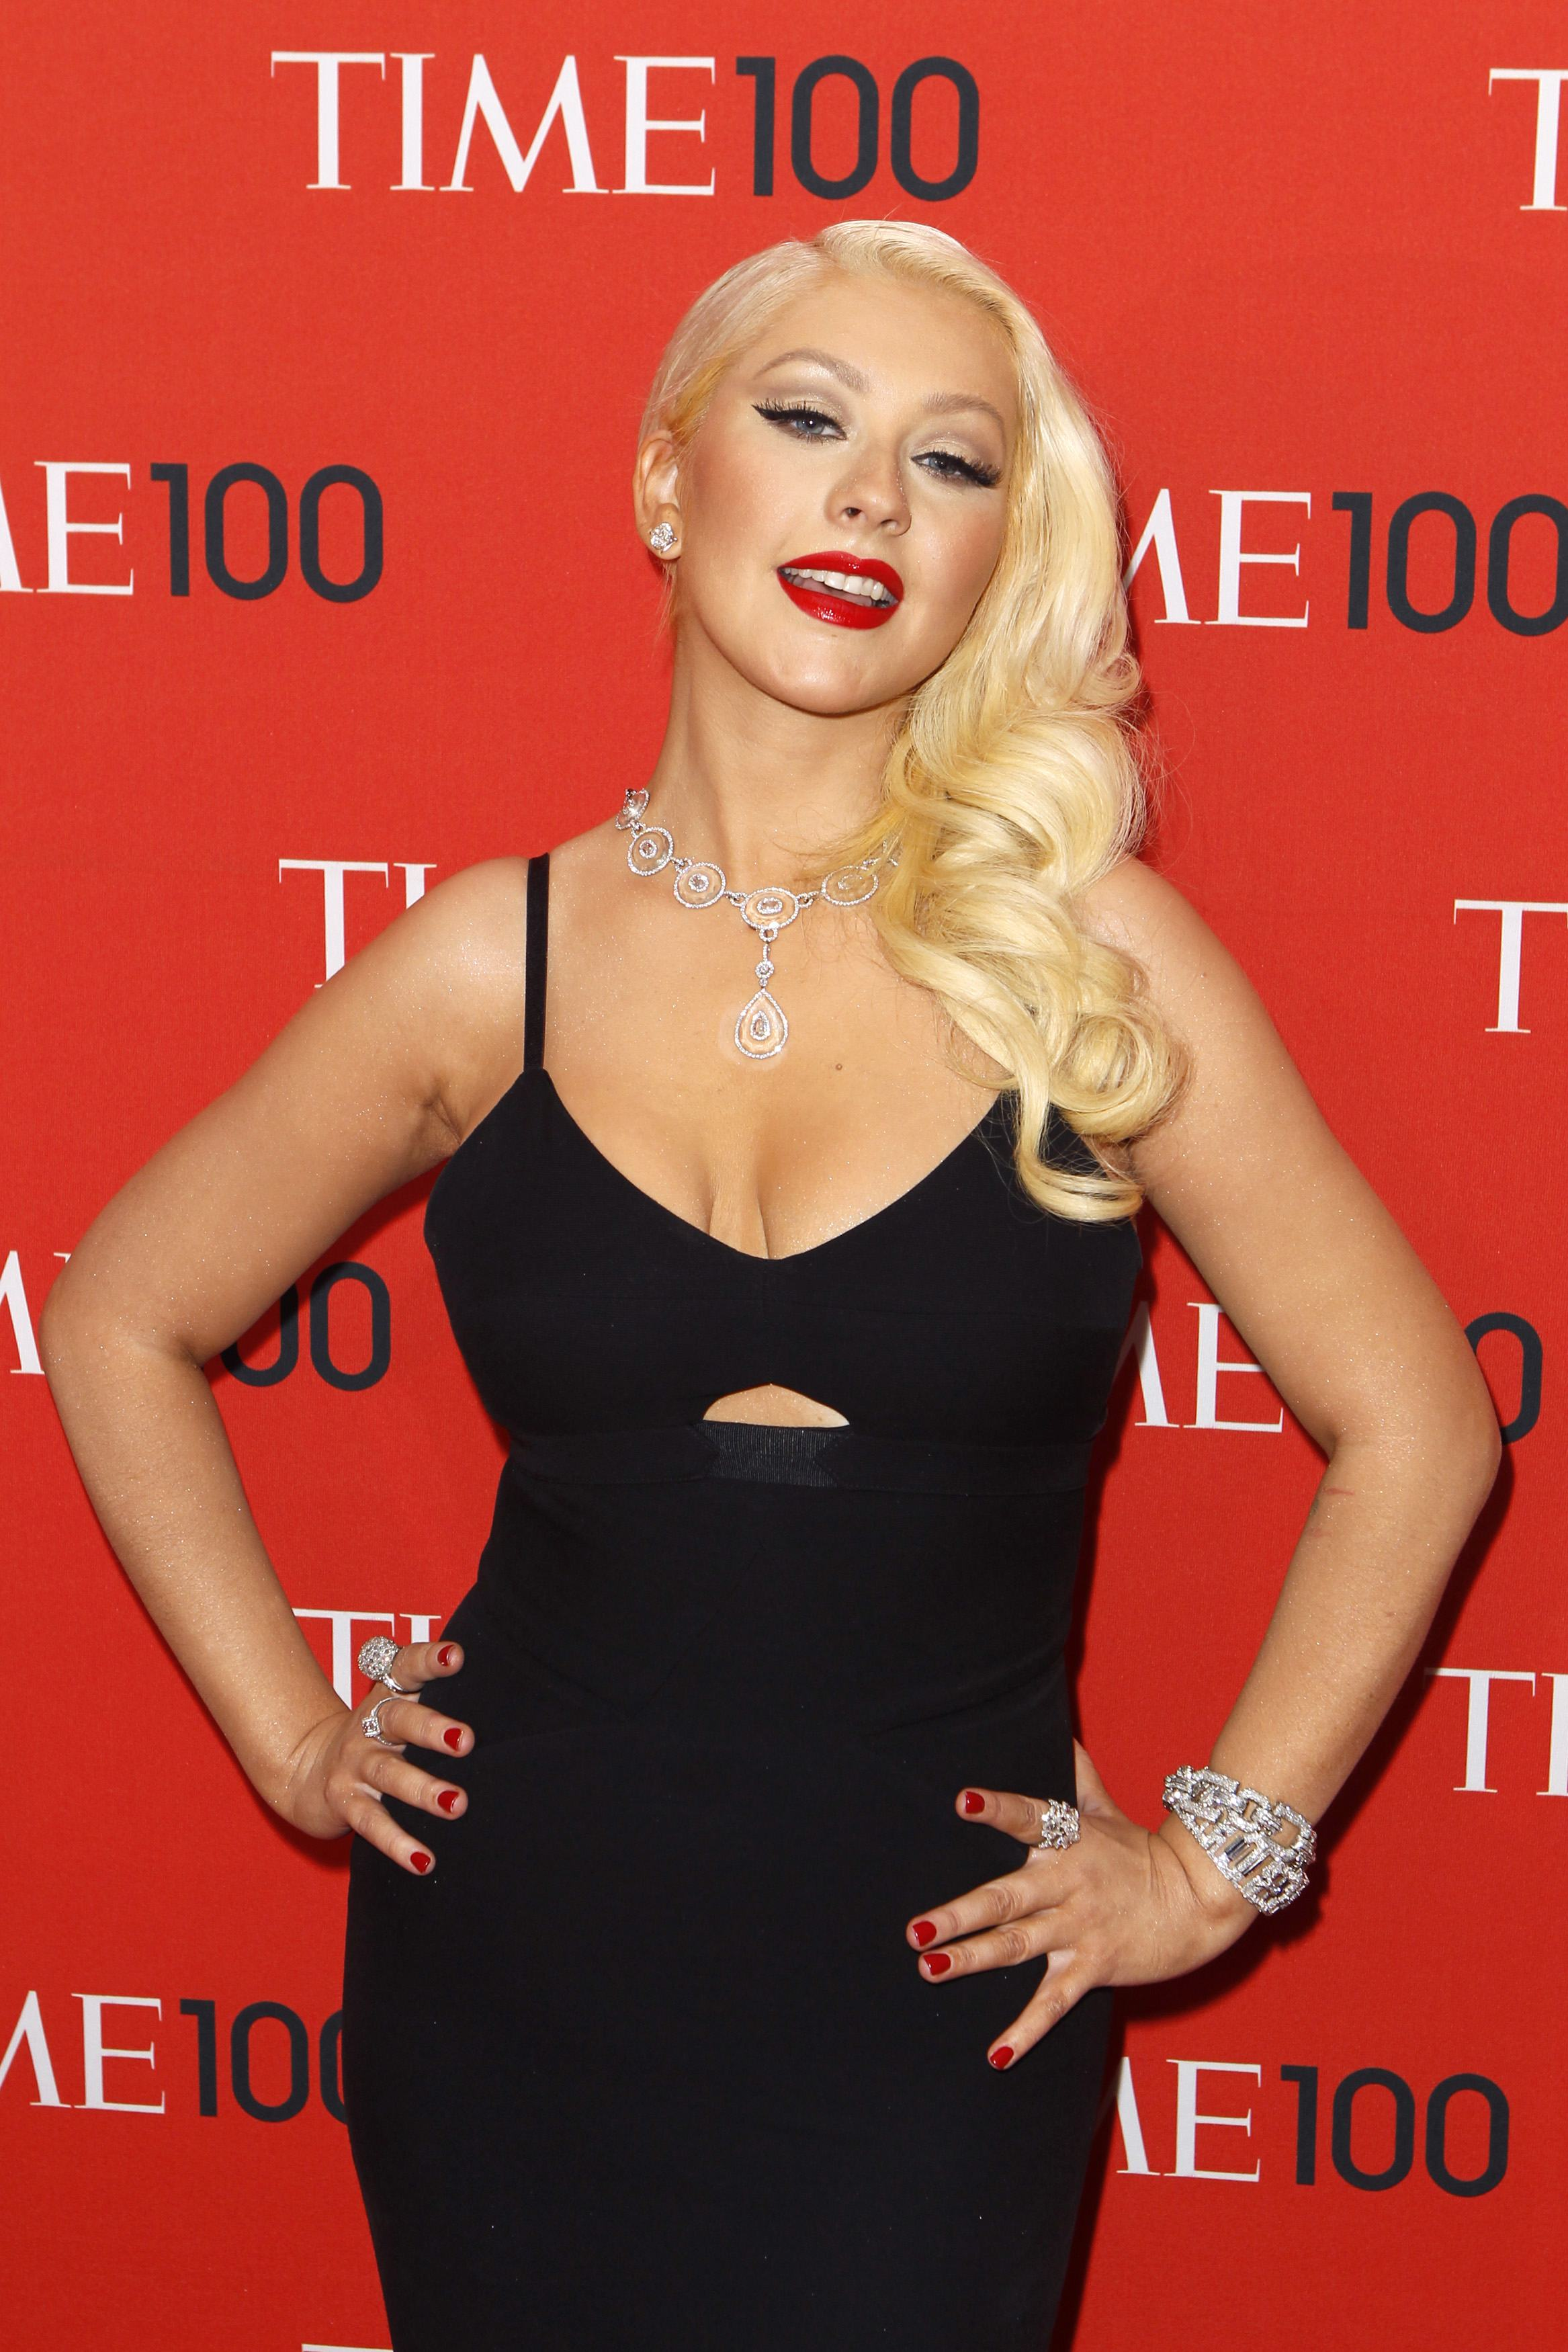 Christina Aguilera Slim: Singer Debuts New Figure At Time 100 Gala ...